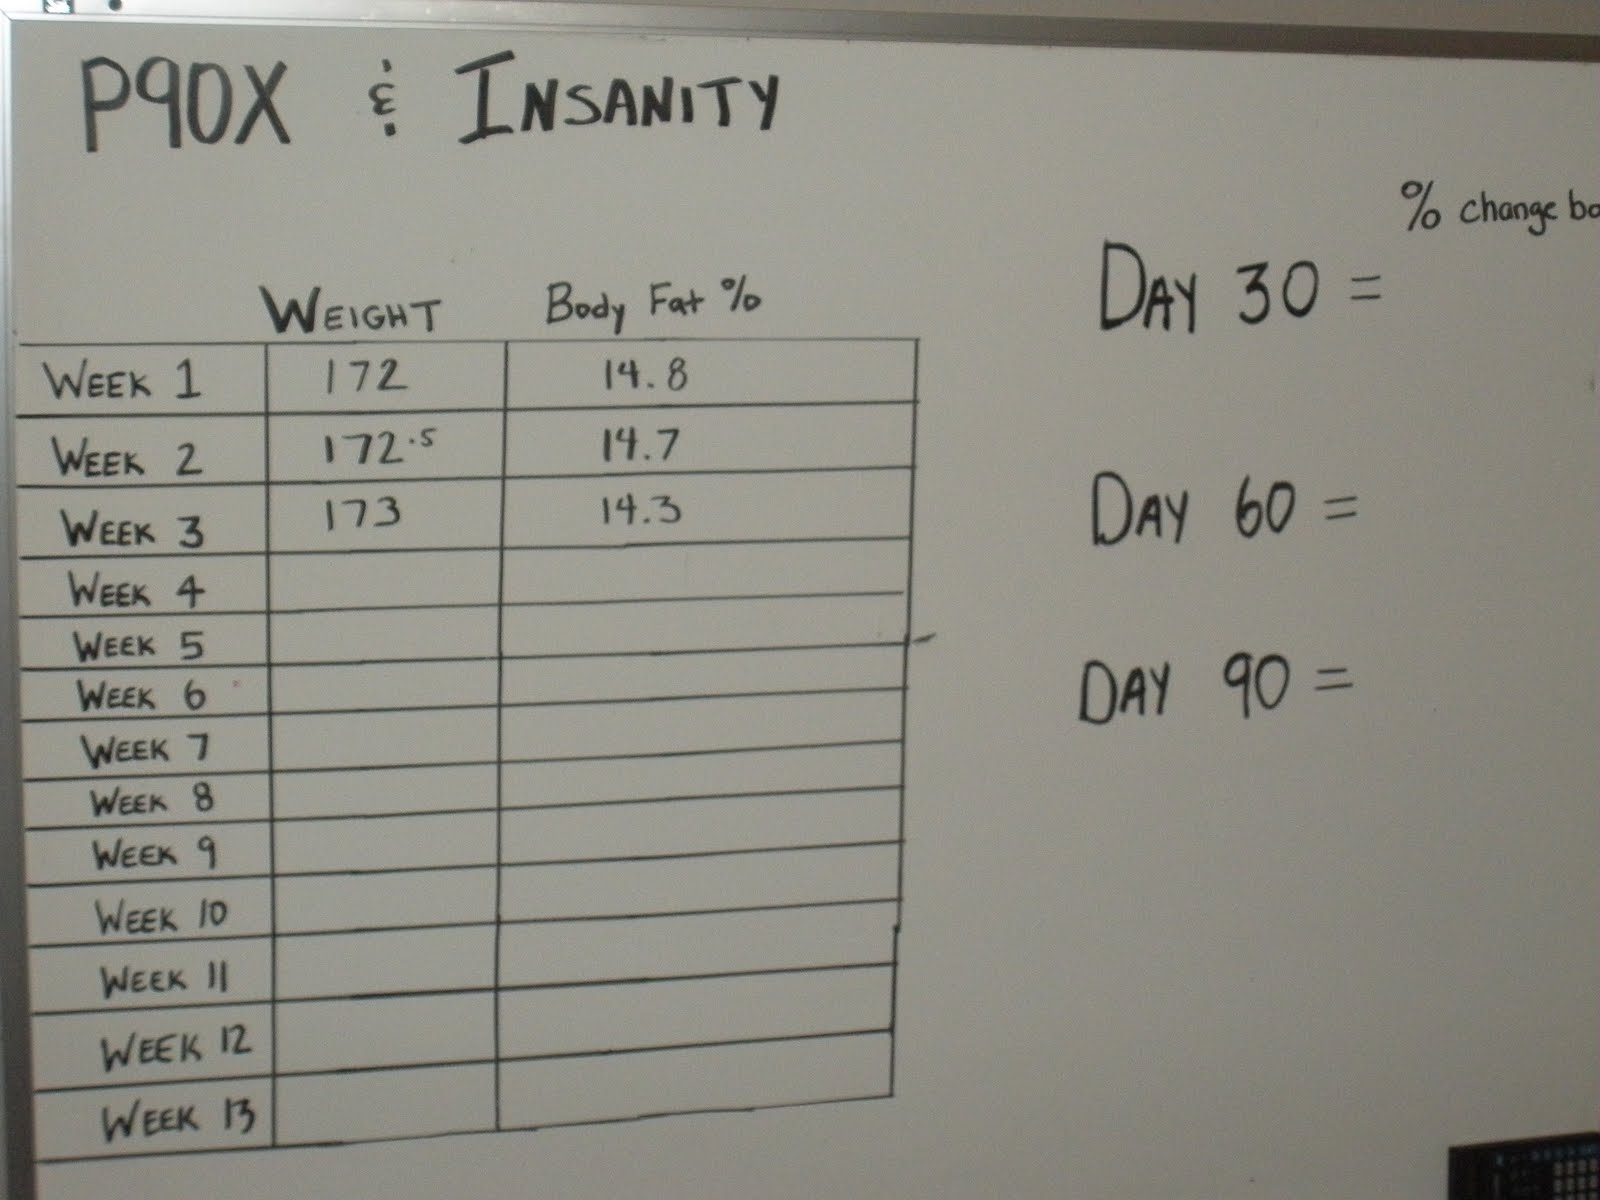 Fitness 2 Freedom Week 2 Results From P90x And Insanity